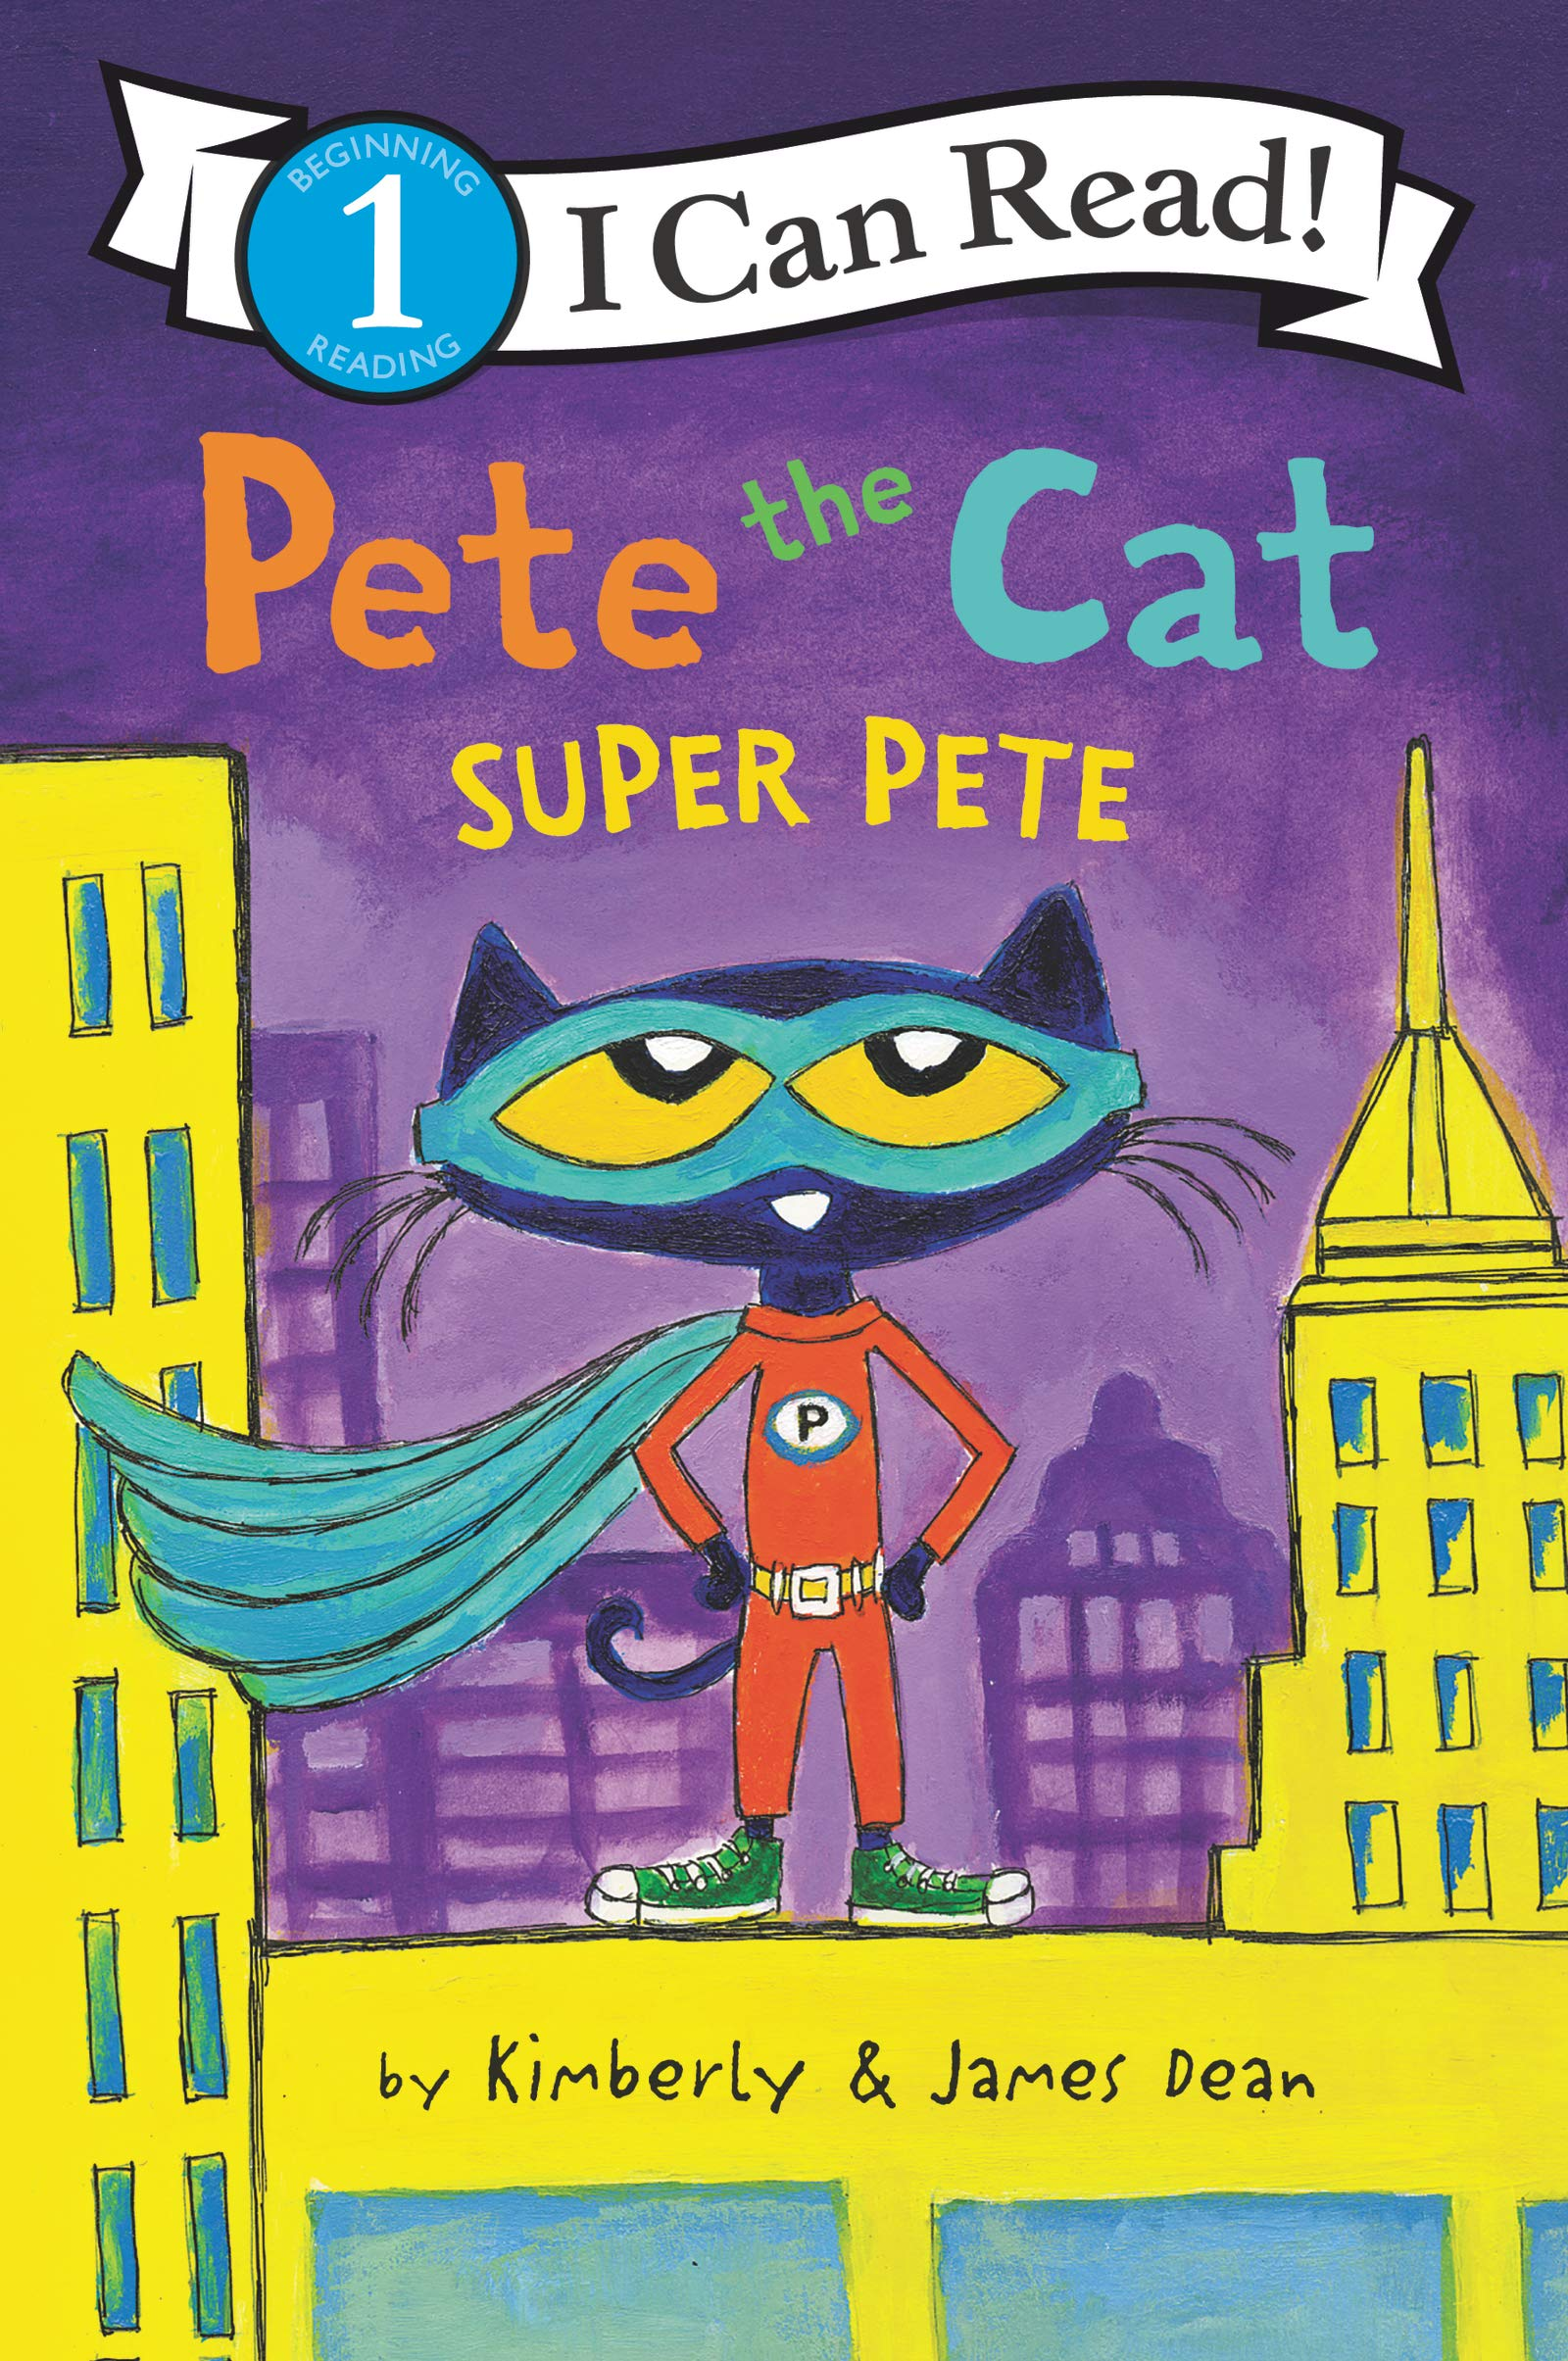 Amazon.com: Pete the Cat: Super Pete (I Can Read Level 1) (9780062868534): Dean, James, Dean, Kimberly, Dean, James: Books